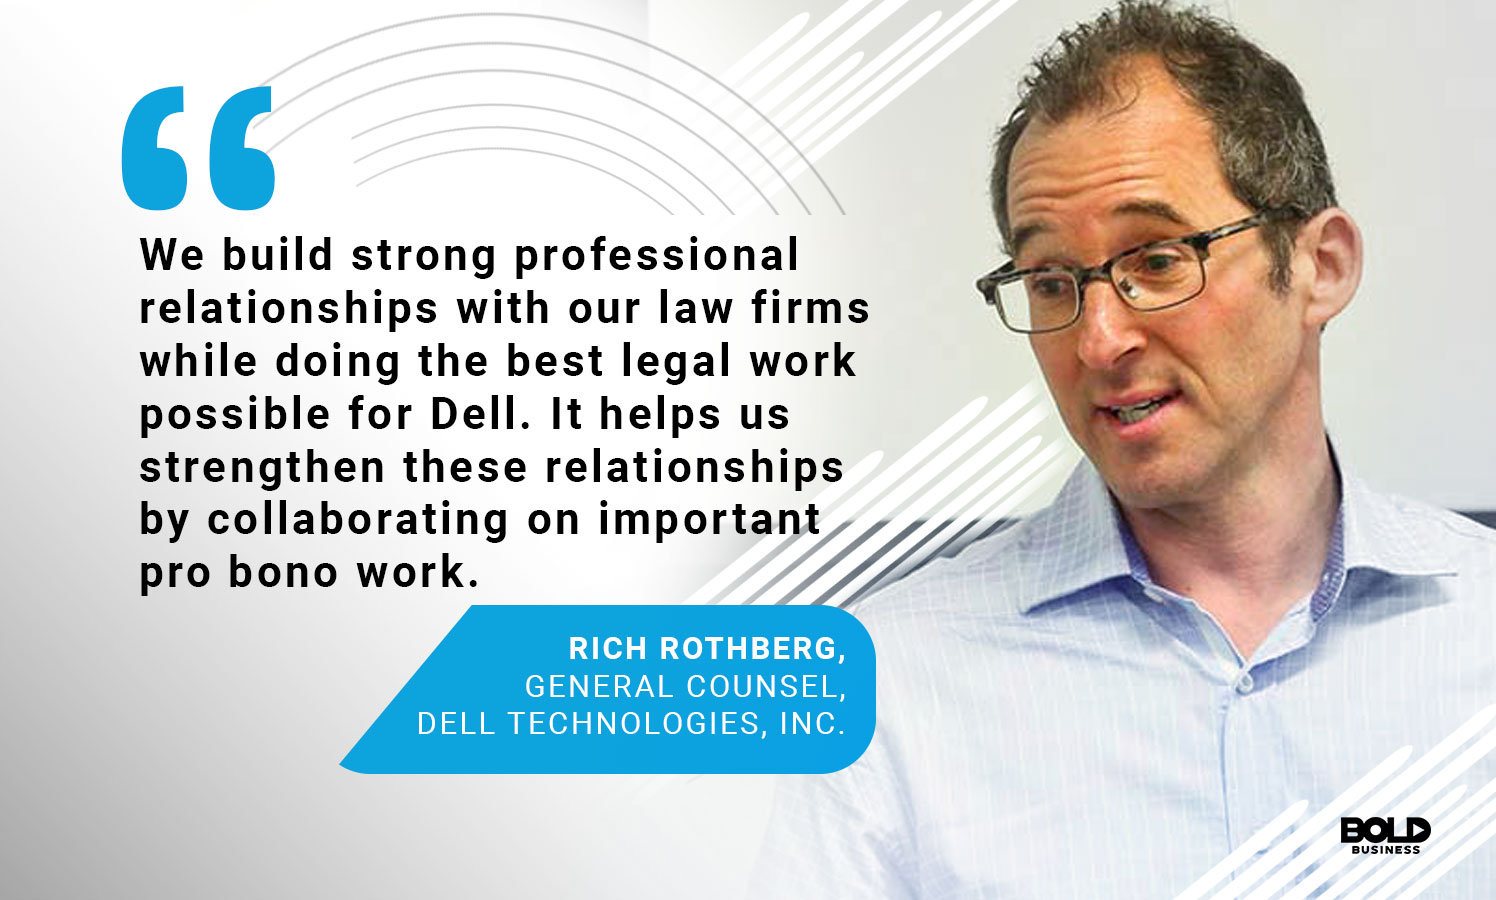 As part of Dell leadership, Richard Rothberg has steered the company on an ethical path.